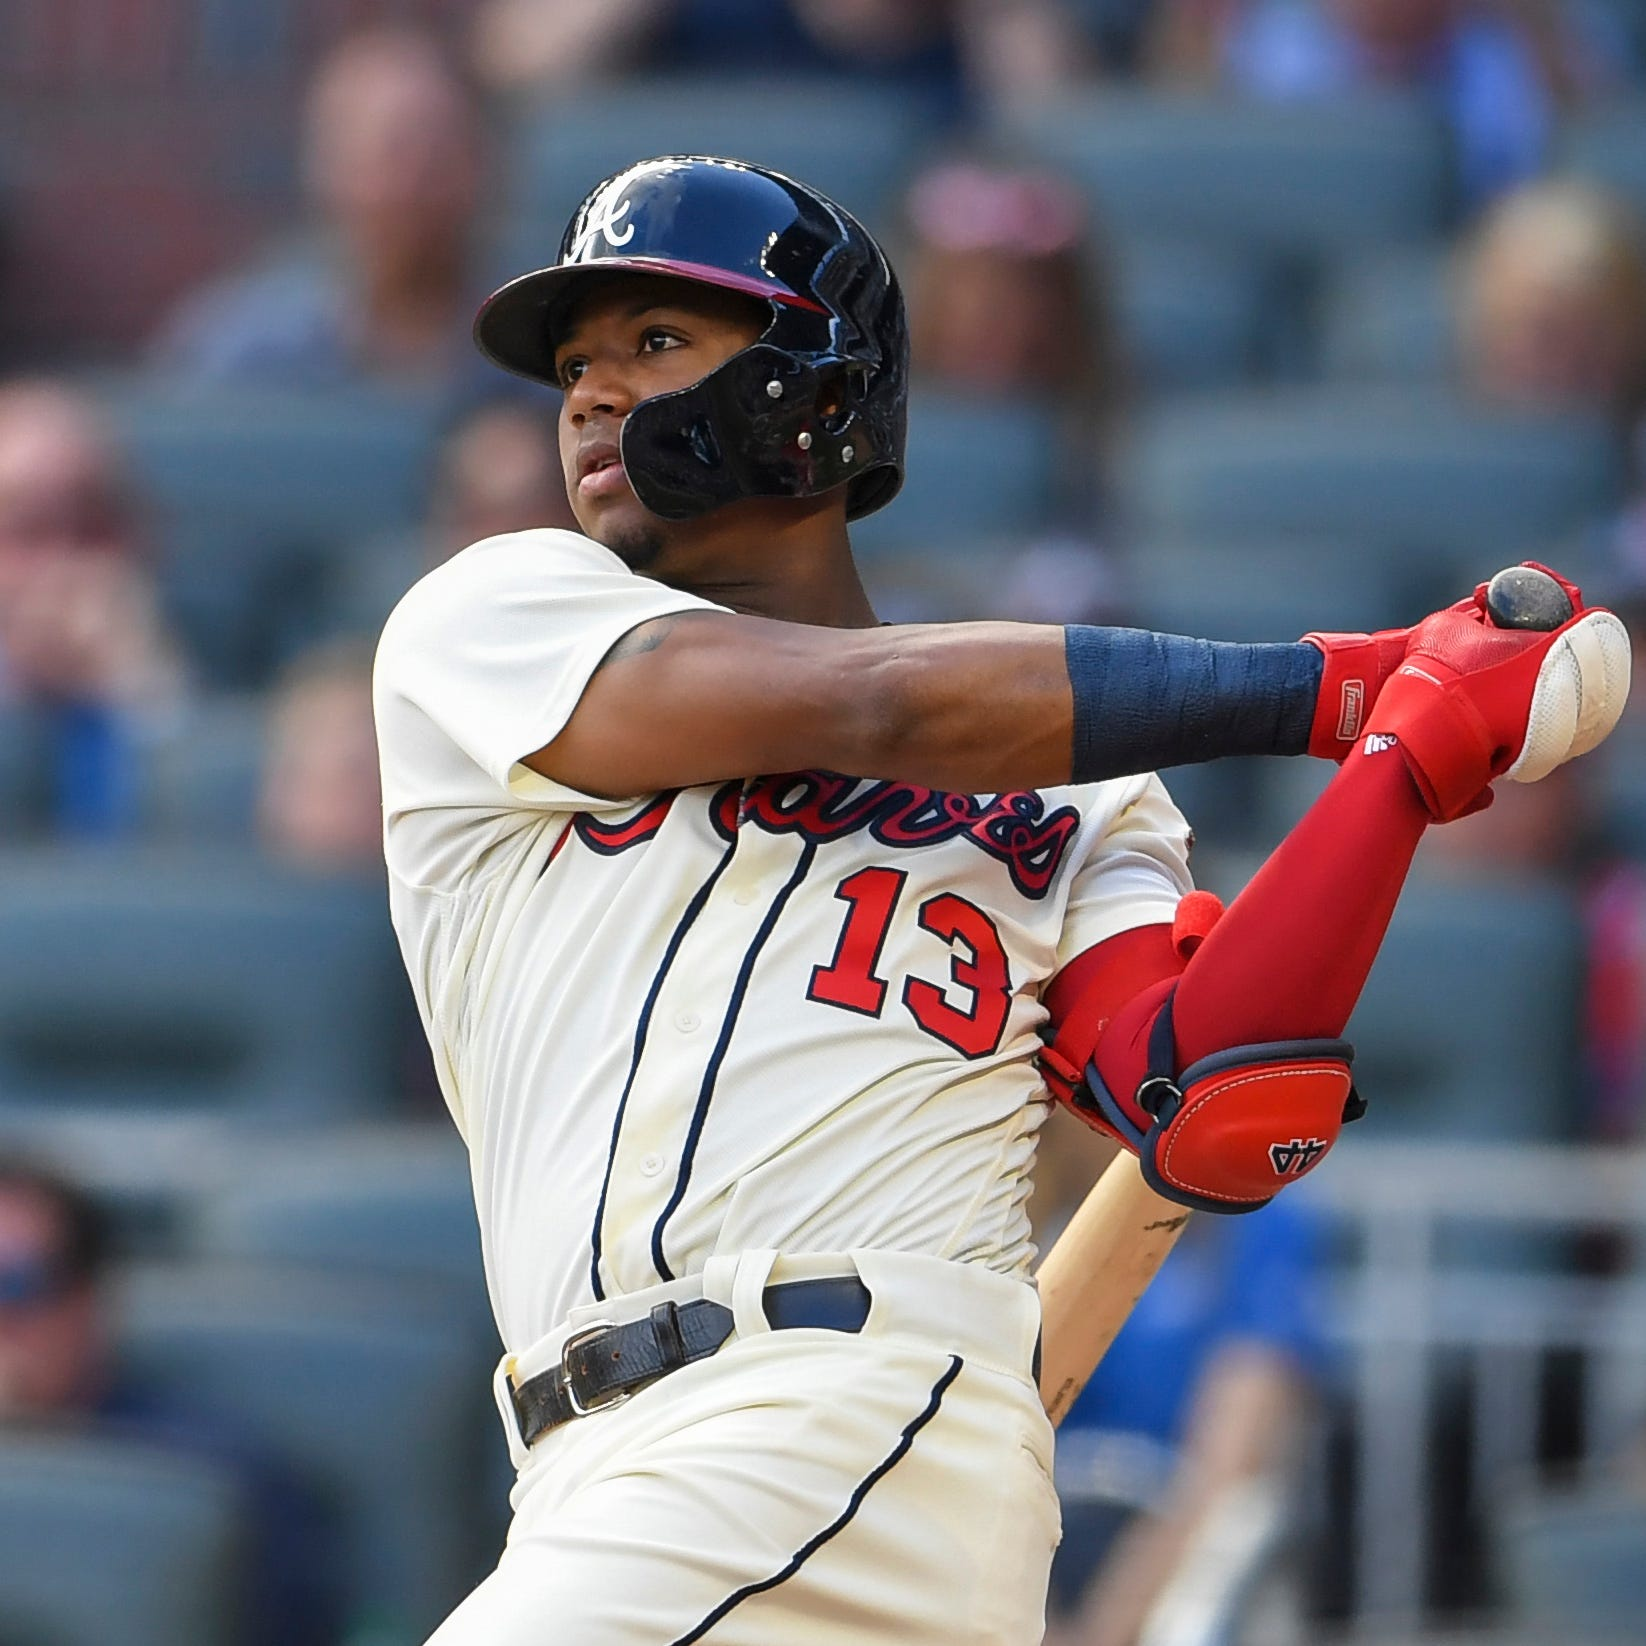 The 30 most intriguing players in fantasy baseball for 2019